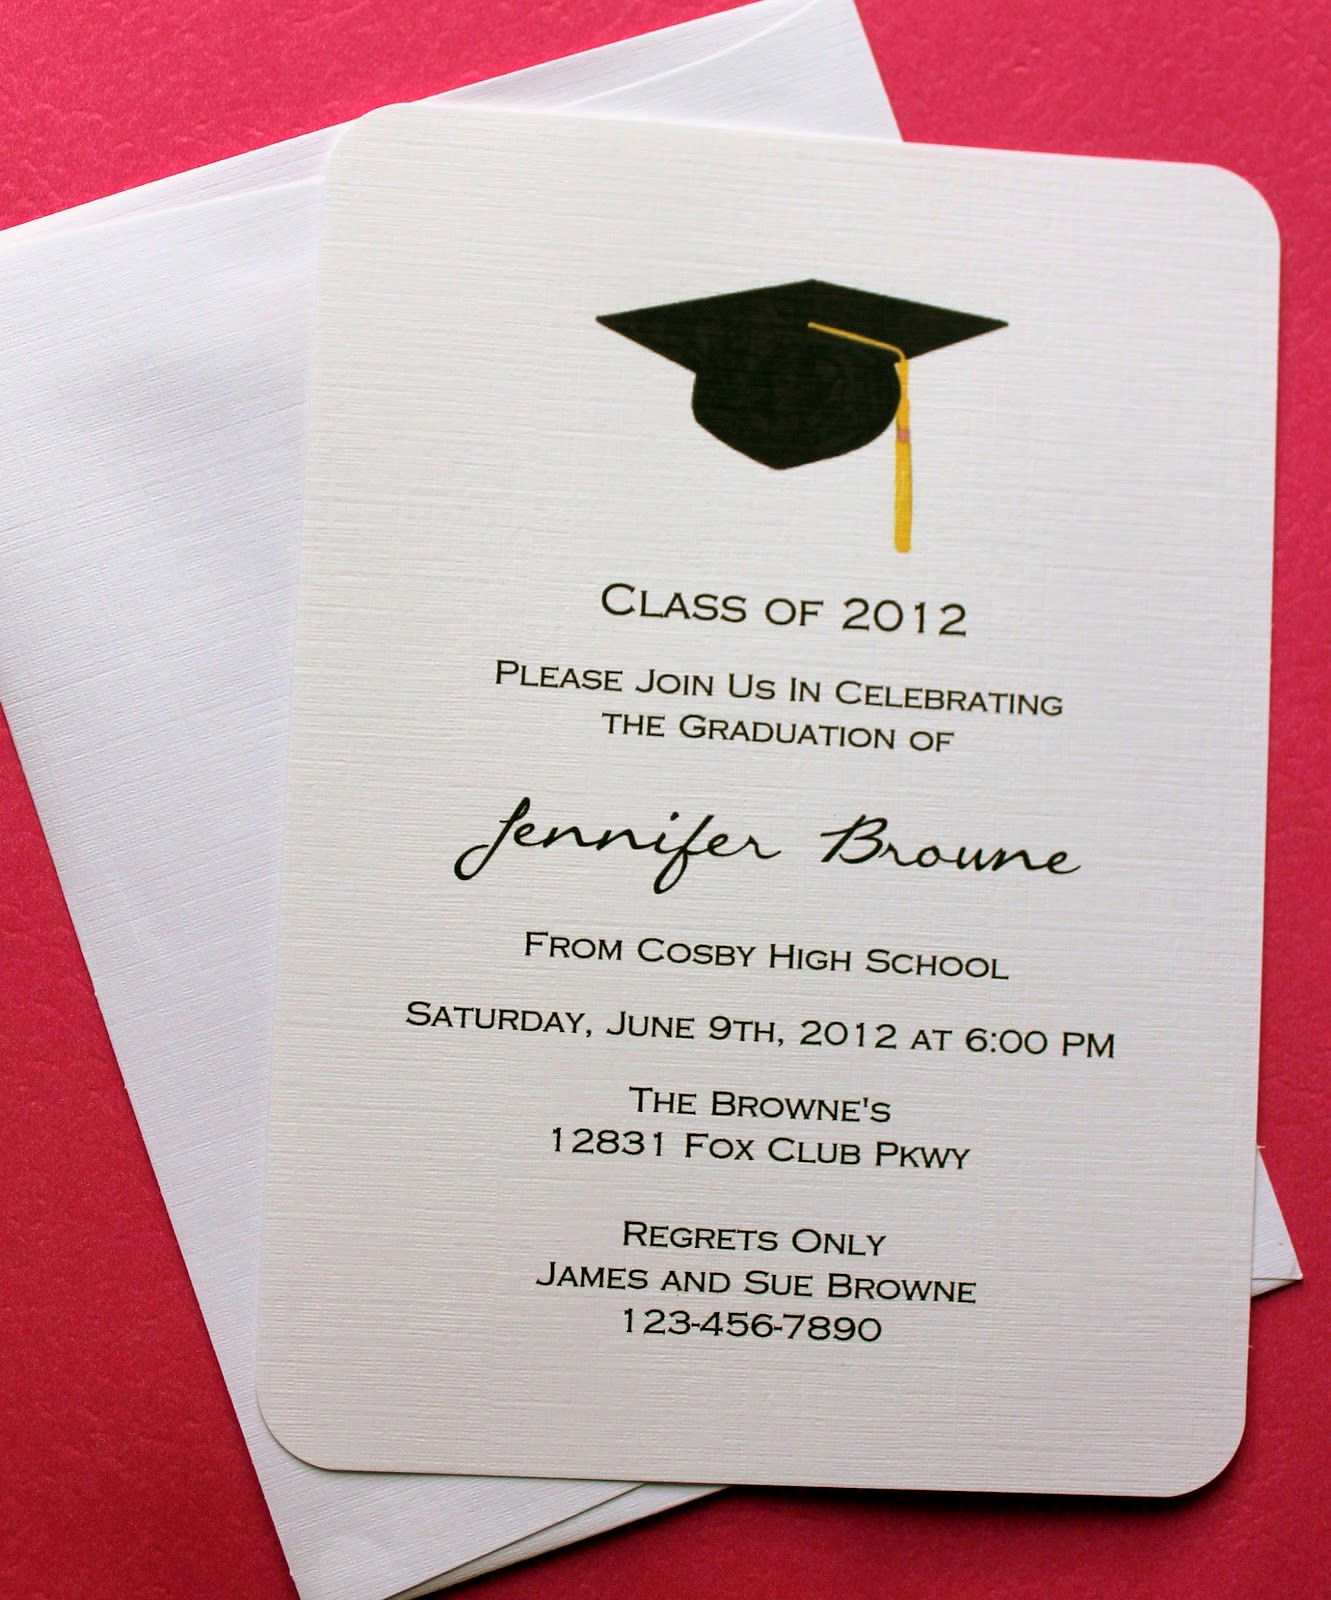 Template for Graduation Invitation Unique Graduation Invitation Template Graduation Invitation